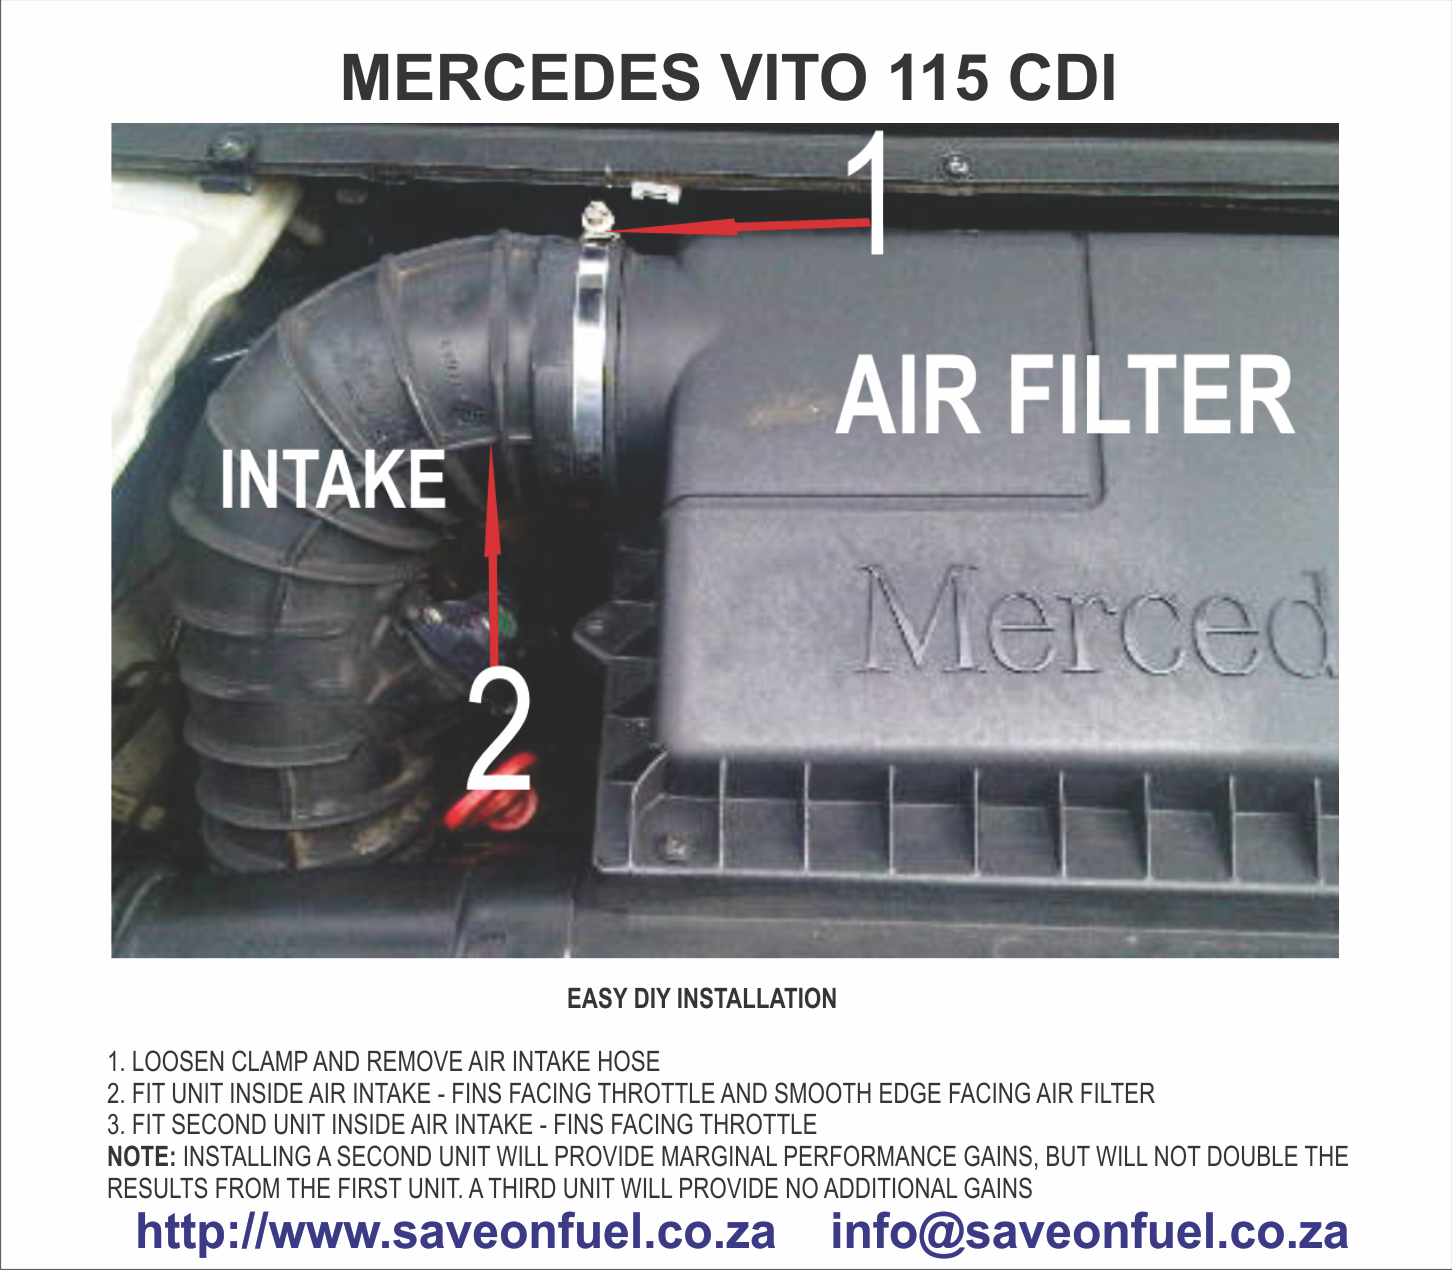 mercedes vito 115 cdi cyclone fuel saver i south africa. Black Bedroom Furniture Sets. Home Design Ideas